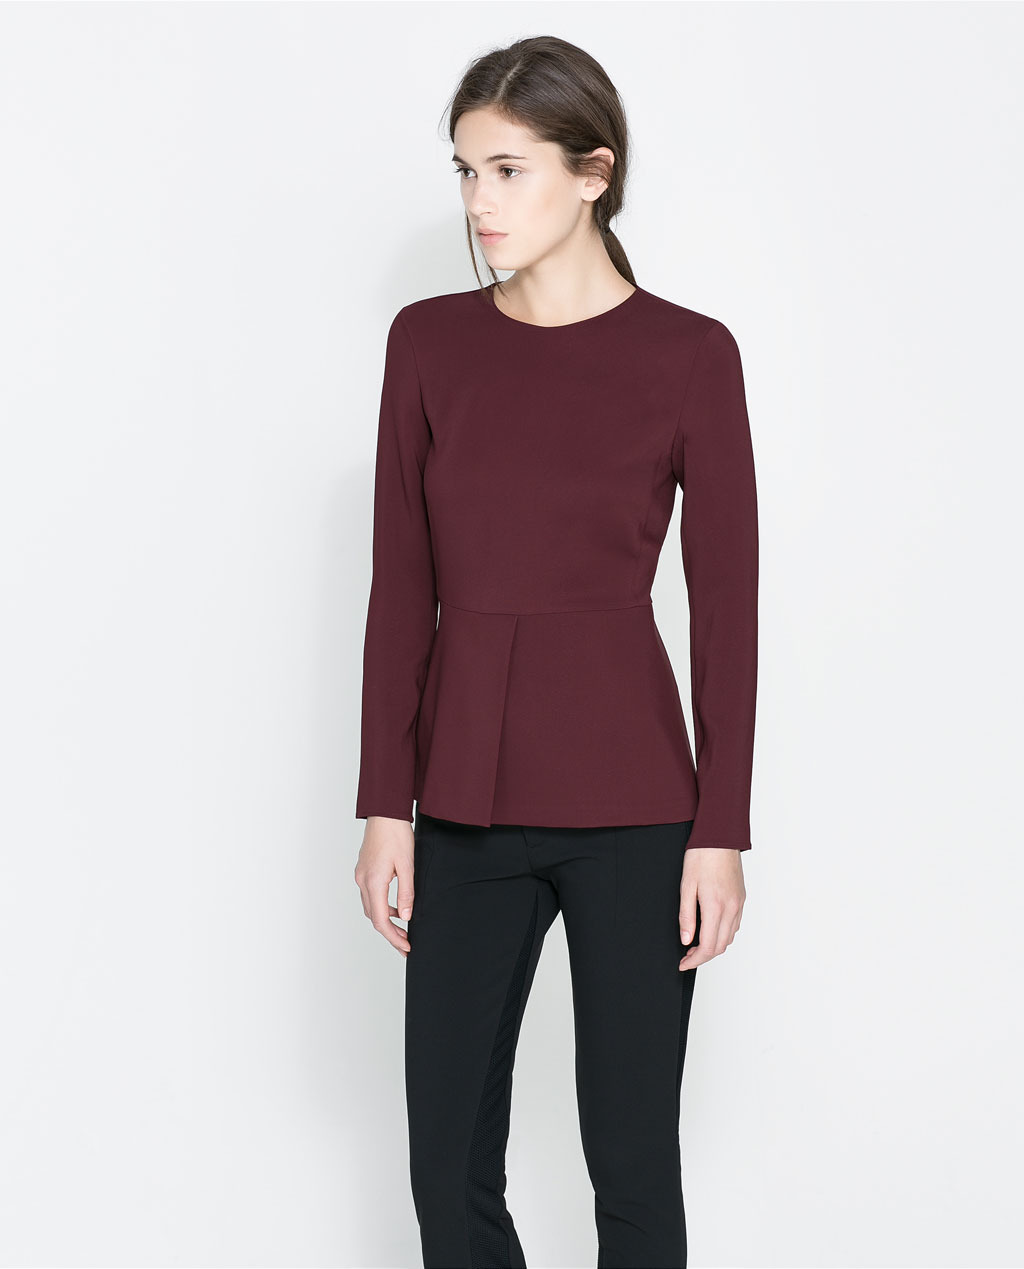 Peplum Top - pattern: plain; waist detail: peplum waist detail; predominant colour: burgundy; occasions: casual, evening, work; length: standard; style: top; fibres: viscose/rayon - stretch; fit: tailored/fitted; neckline: crew; sleeve length: long sleeve; sleeve style: standard; texture group: cotton feel fabrics; pattern type: fabric; season: a/w 2013